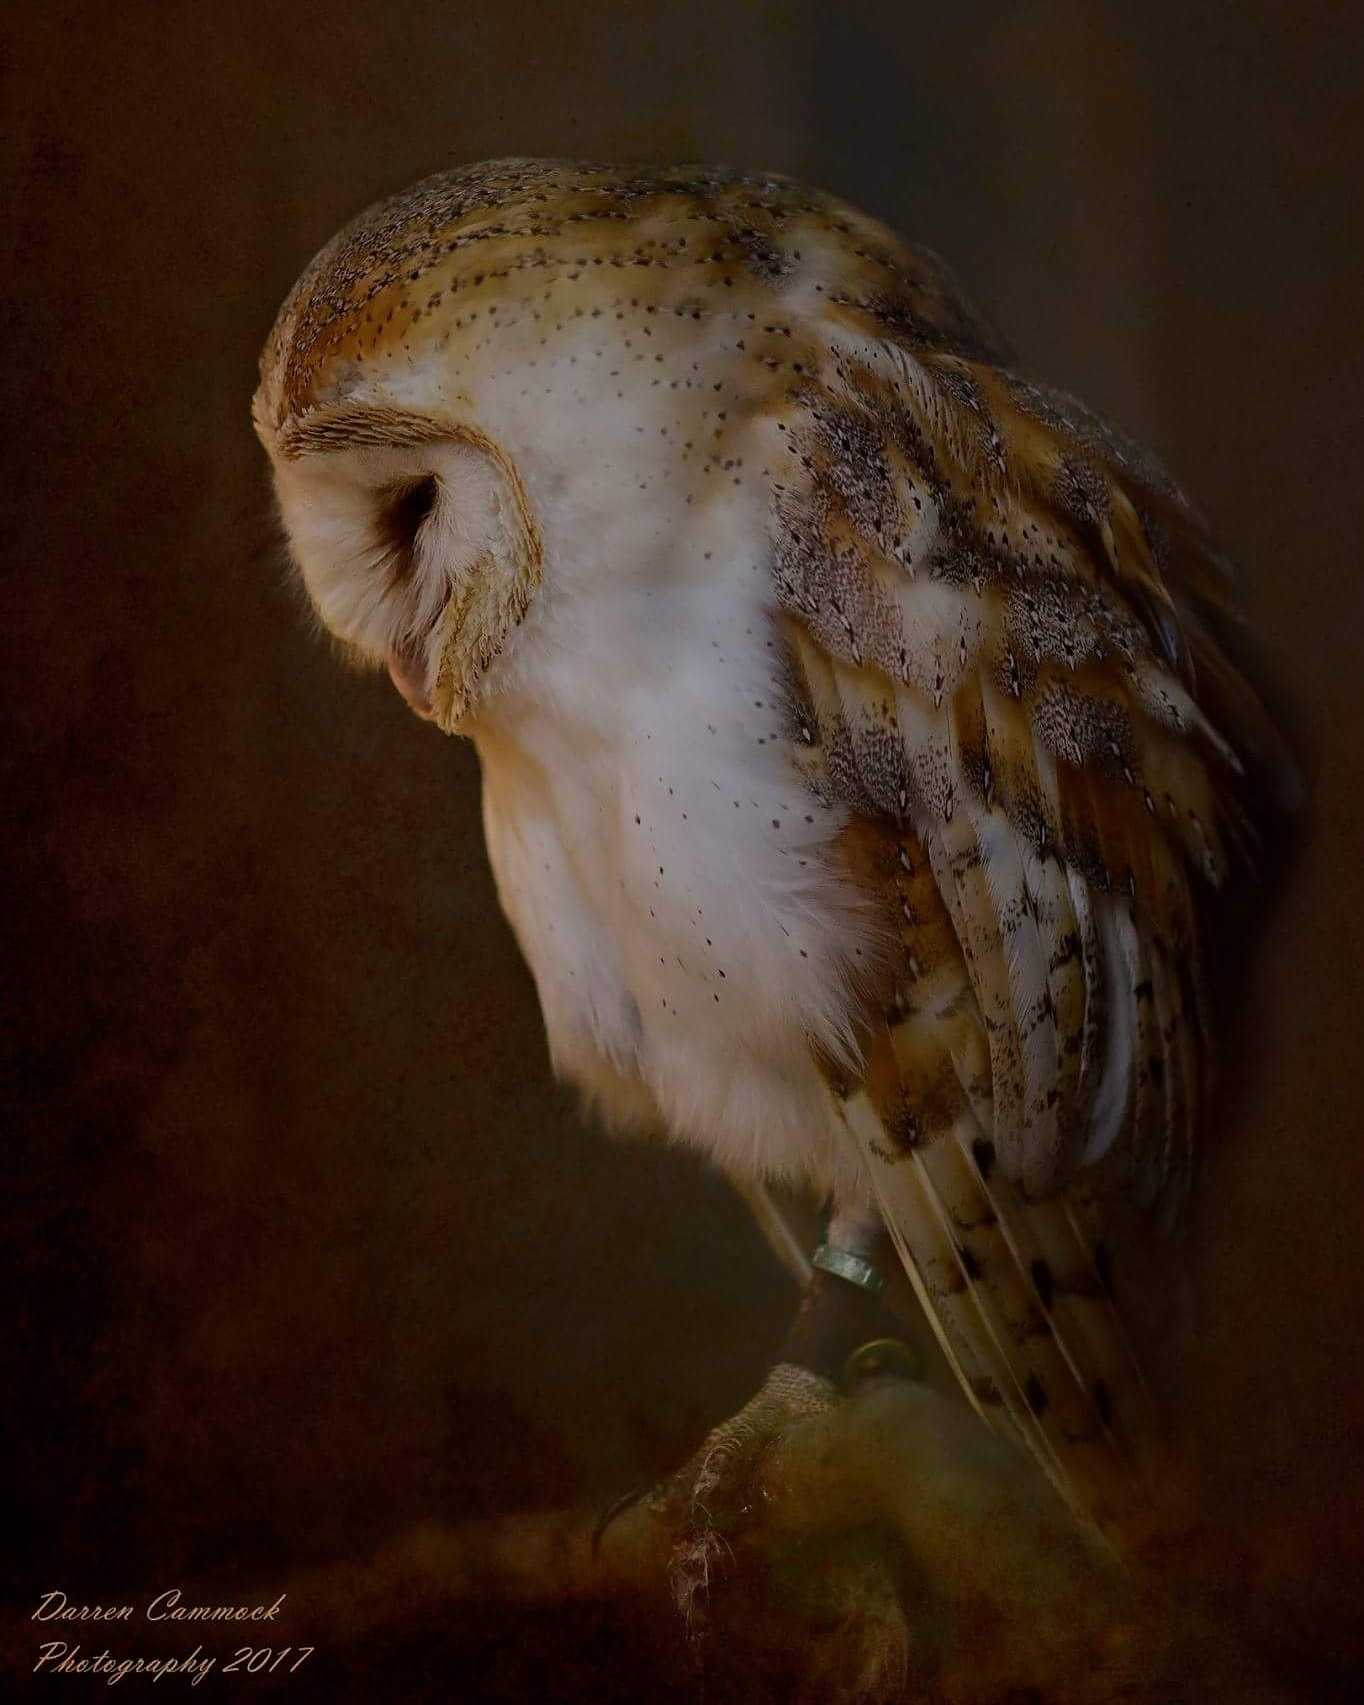 Barn Owl by darrencammock